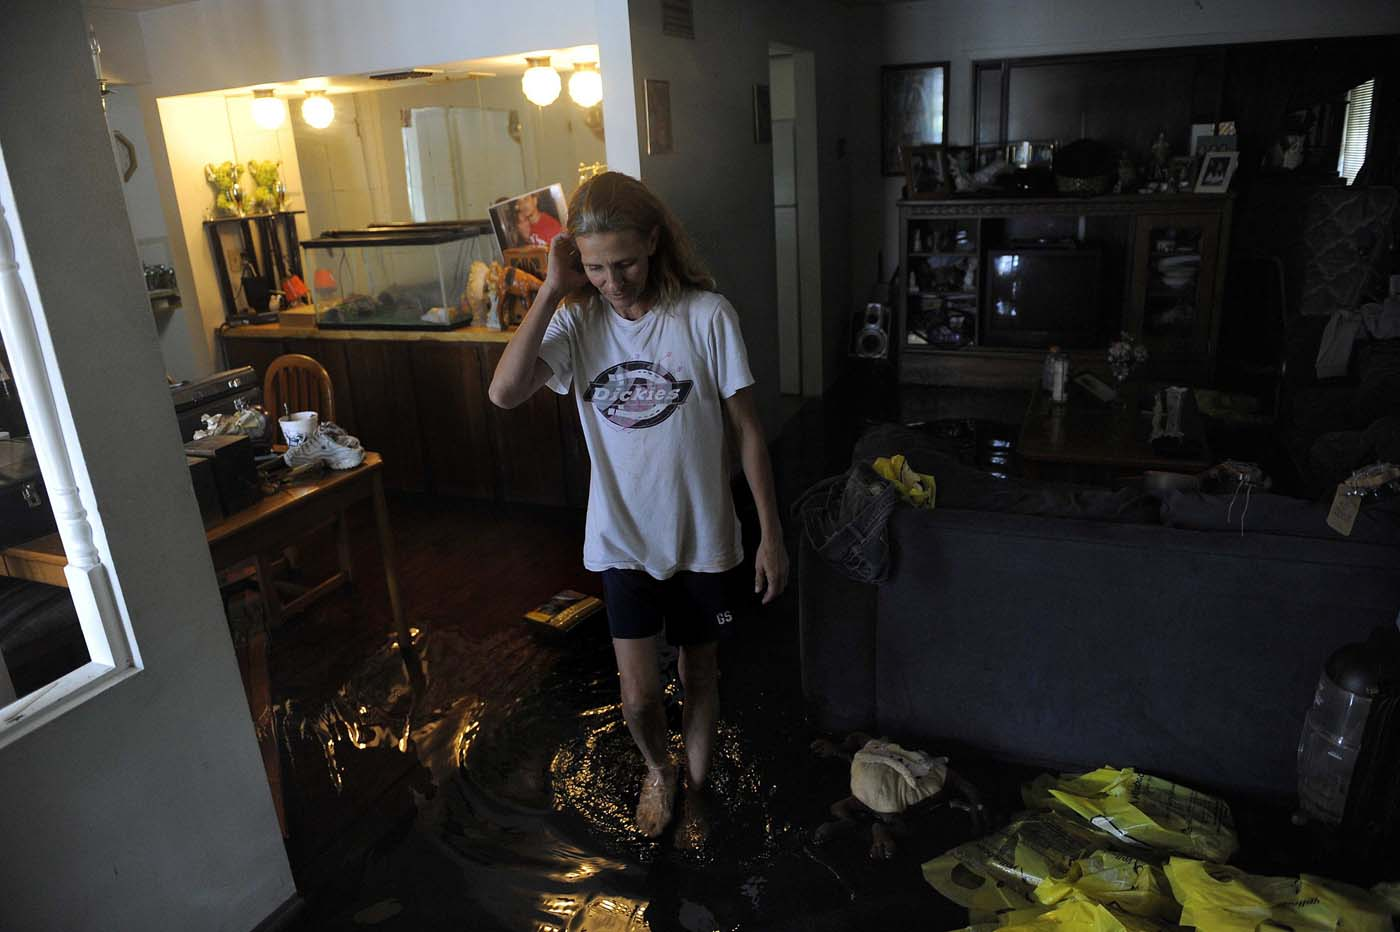 Refusing to evacuate despite over a foot of water inside her home, Georgia Brown inspects the damage in her living room caused by floodwater associated with Tropical Storm Debby in New Port Richey, Florida, June 26, 2012. (Brian Blanco/Reuters)